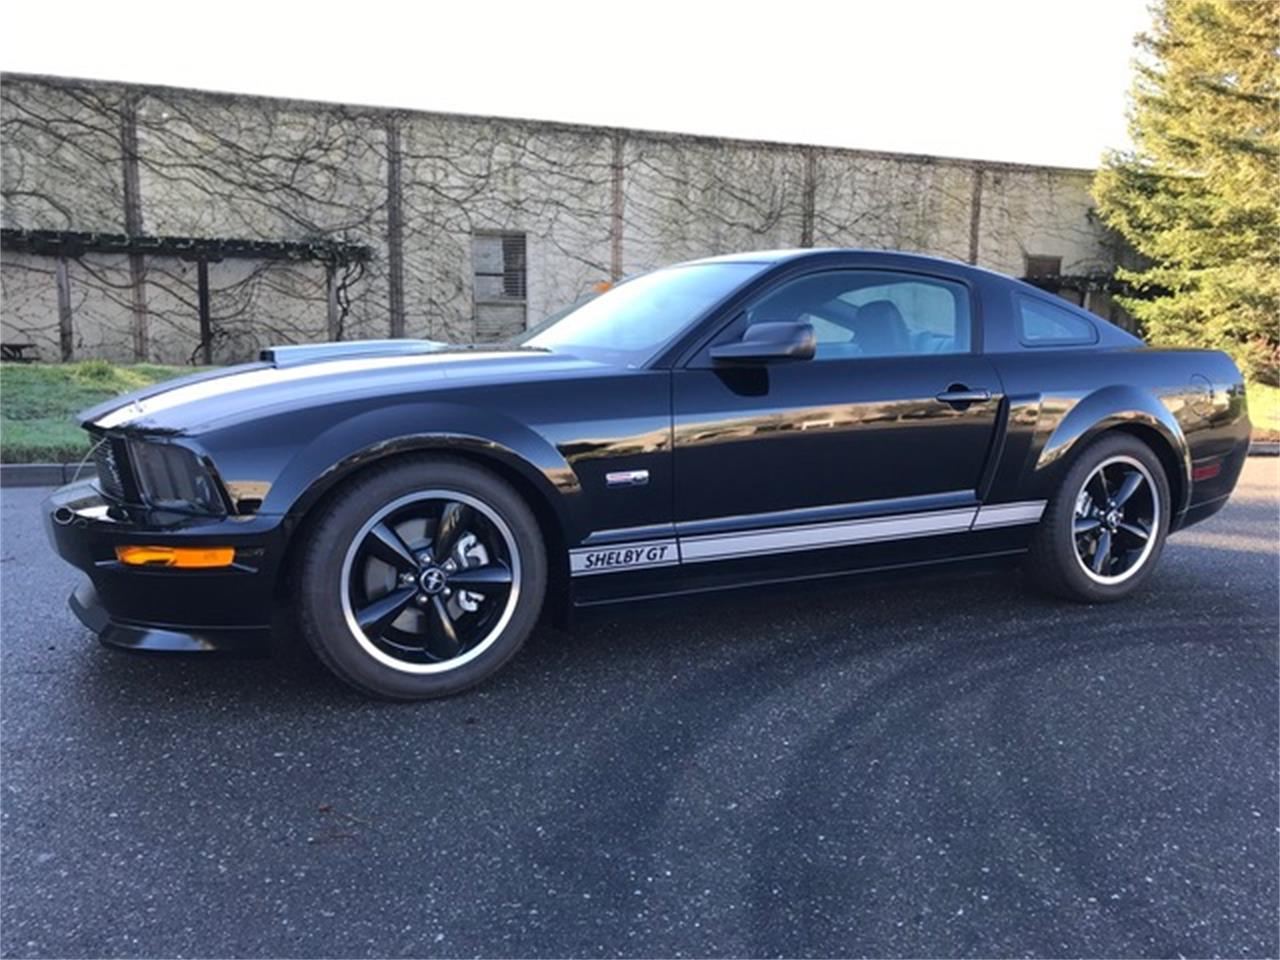 2007 Shelby GT for sale in Sugar Hill, GA – photo 12